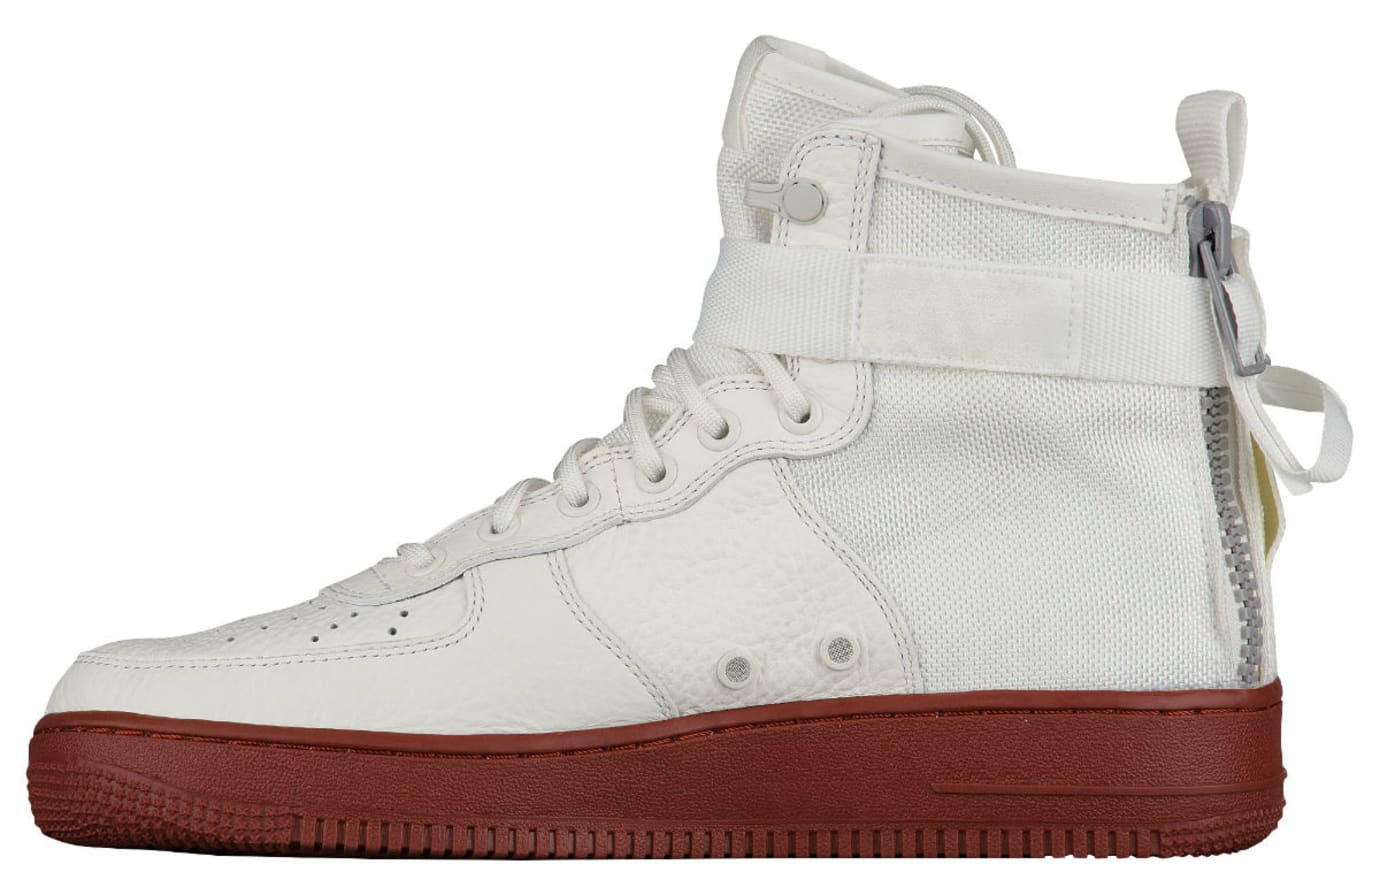 Nike SF Air Force 1 Mid Ivory Dark Red Release Date Medial 917753-100